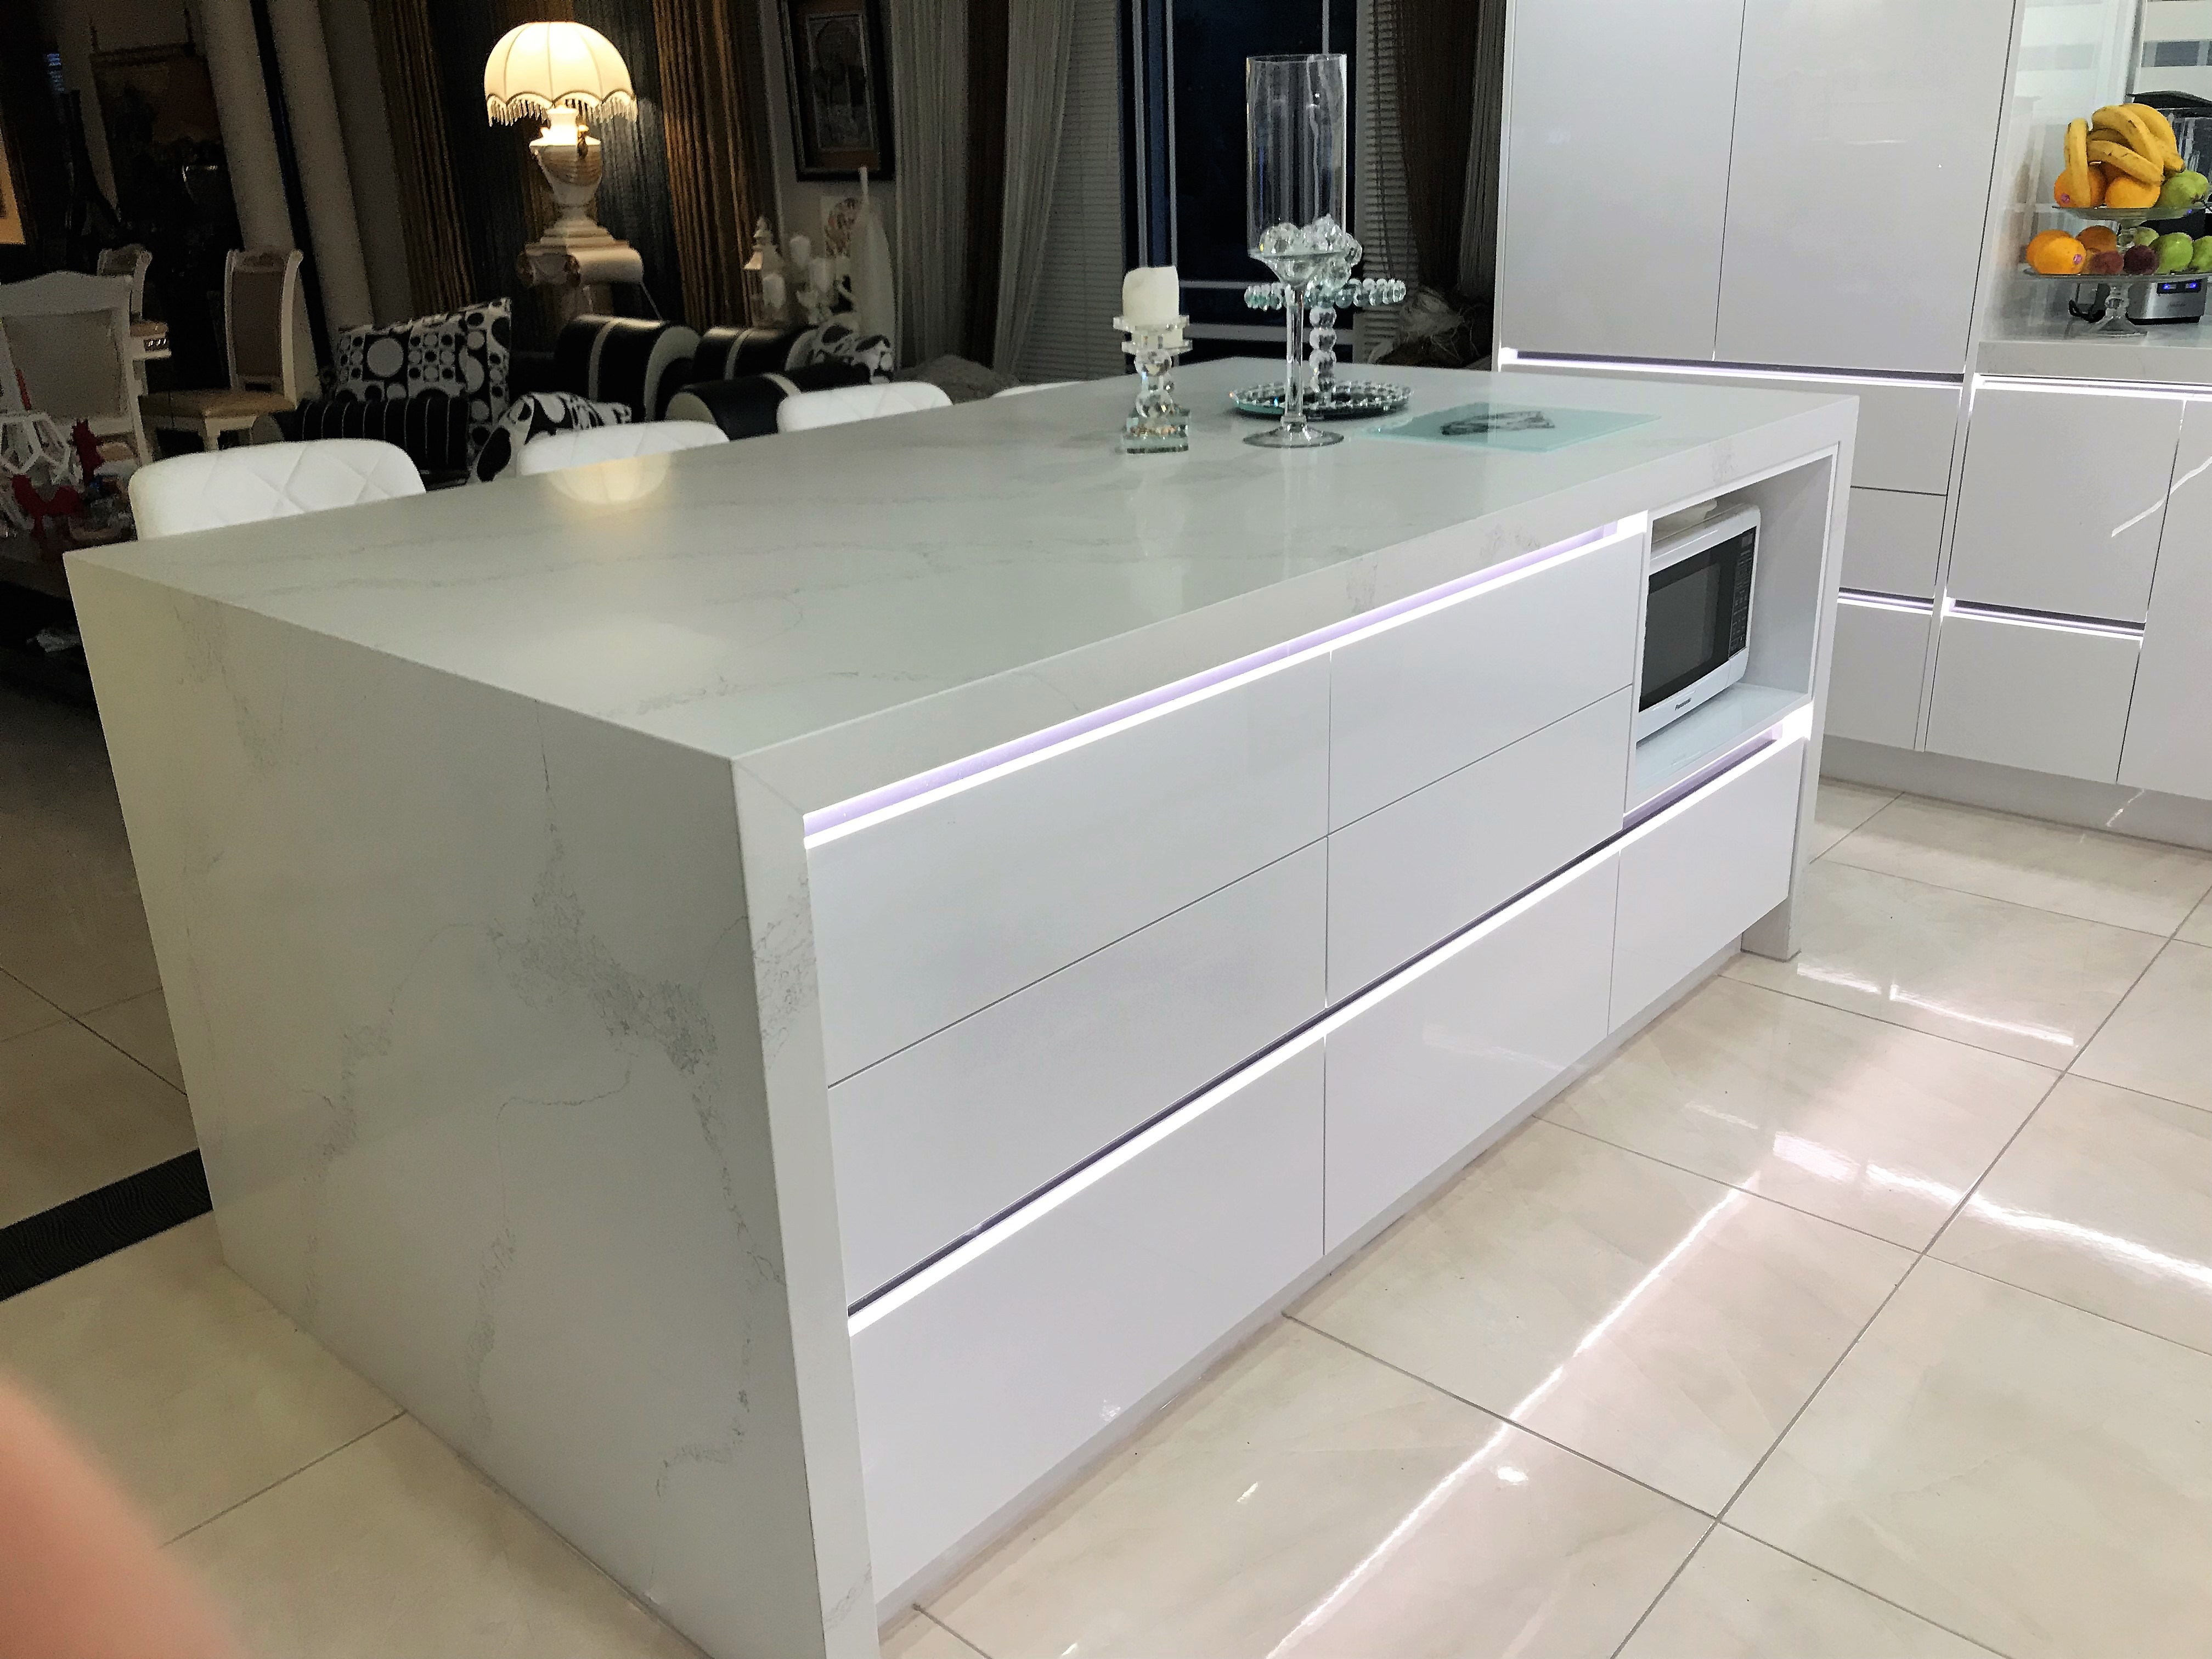 GJ-Kitchens-dannemoraskitchen-6-20181211023505403